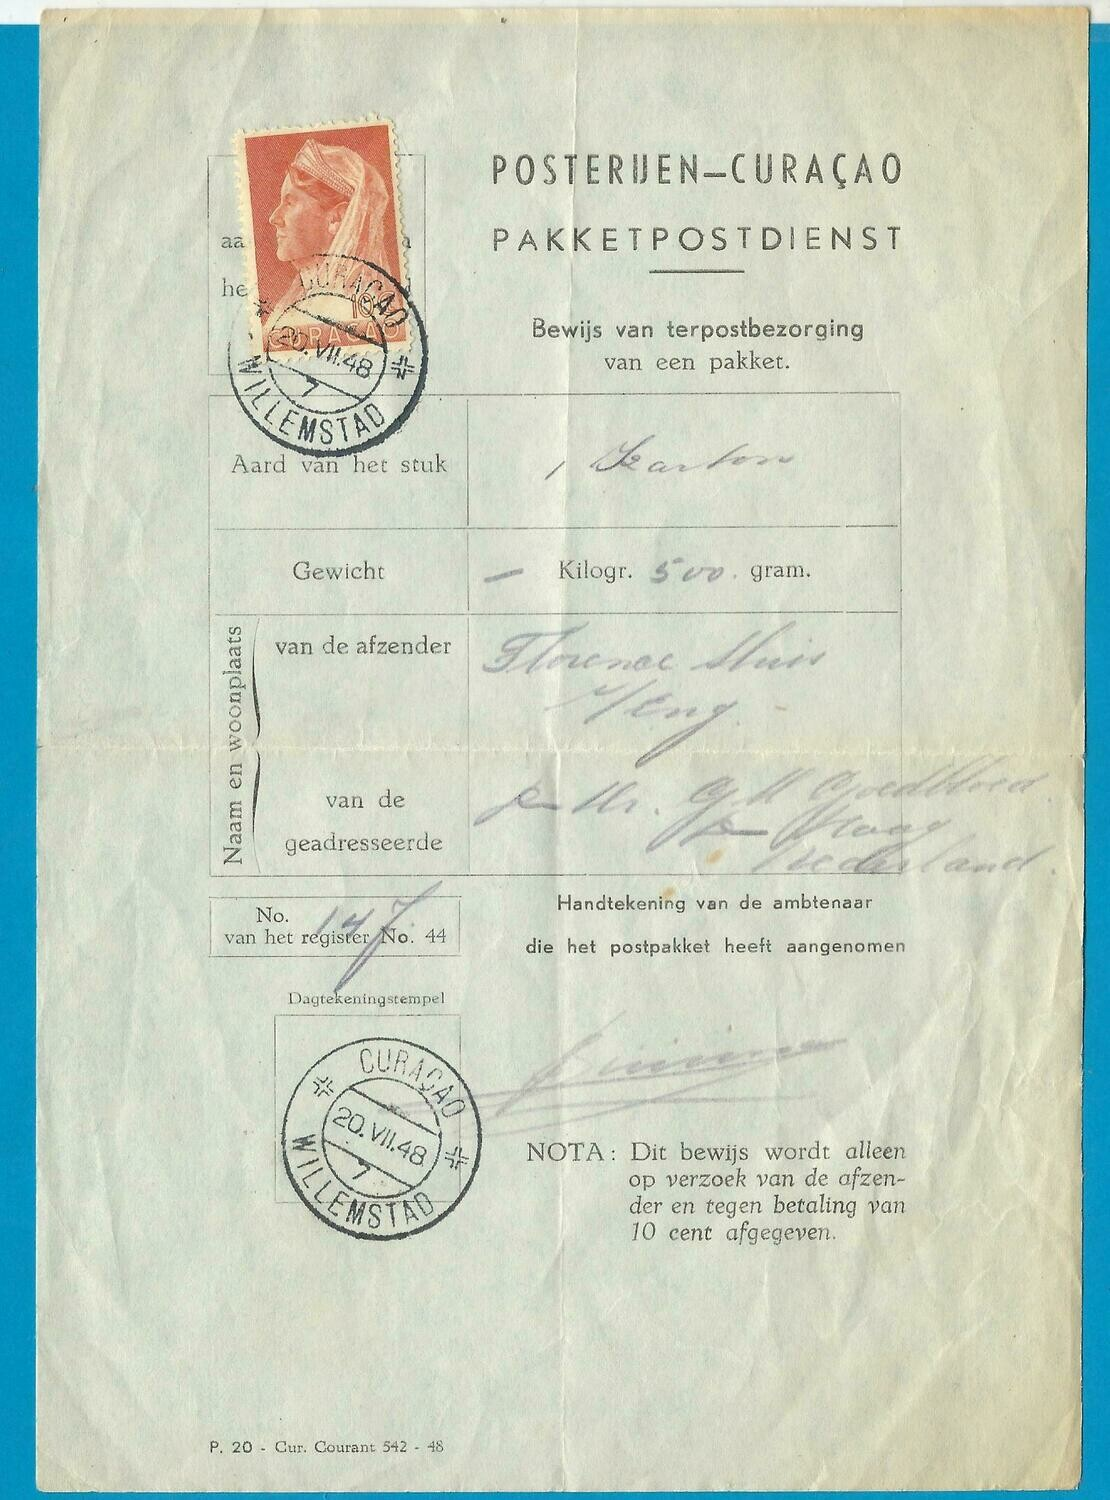 CURAÇAO form 1948 for delivery of a parcel